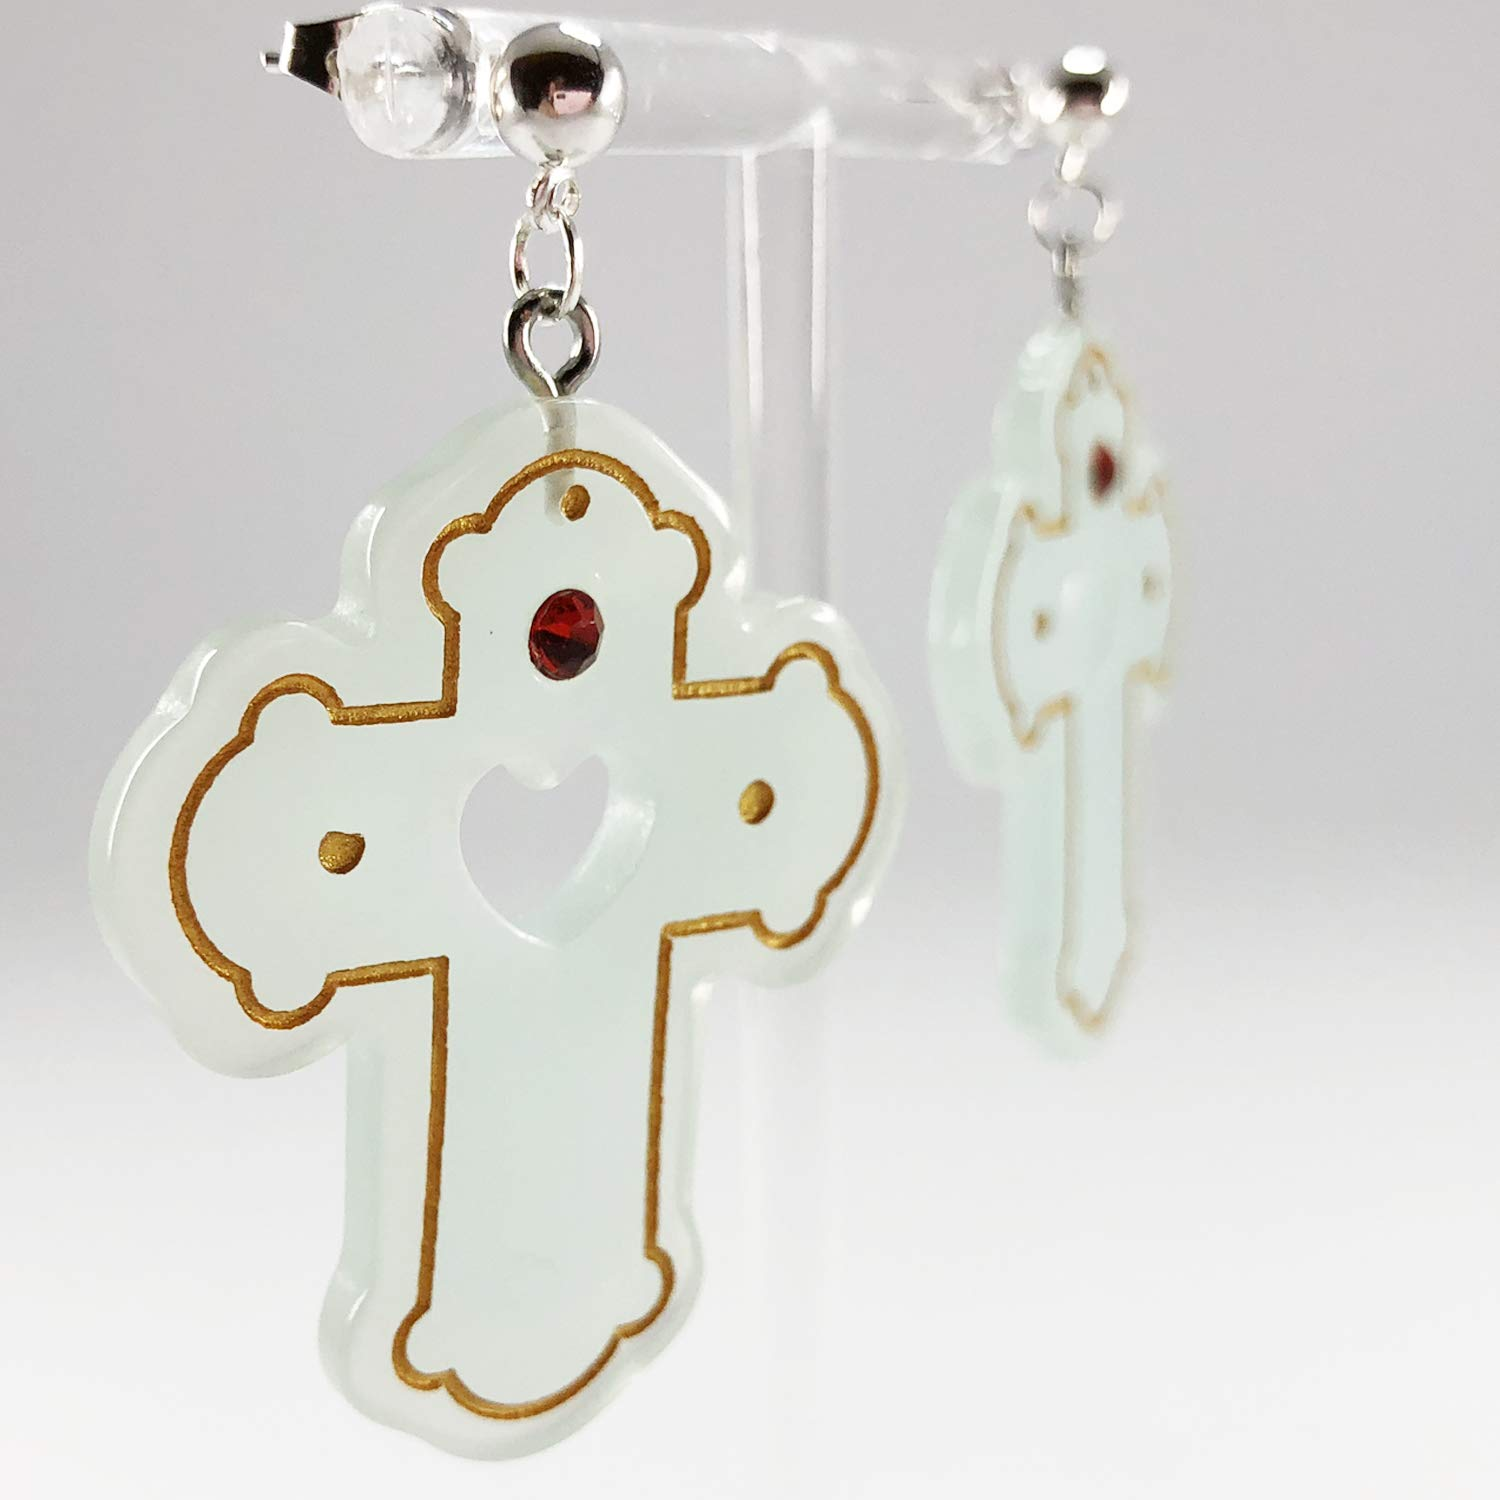 CUTIFICIAL Cross Dangle Earrings For Women and Girls Clip-on Exchange Available